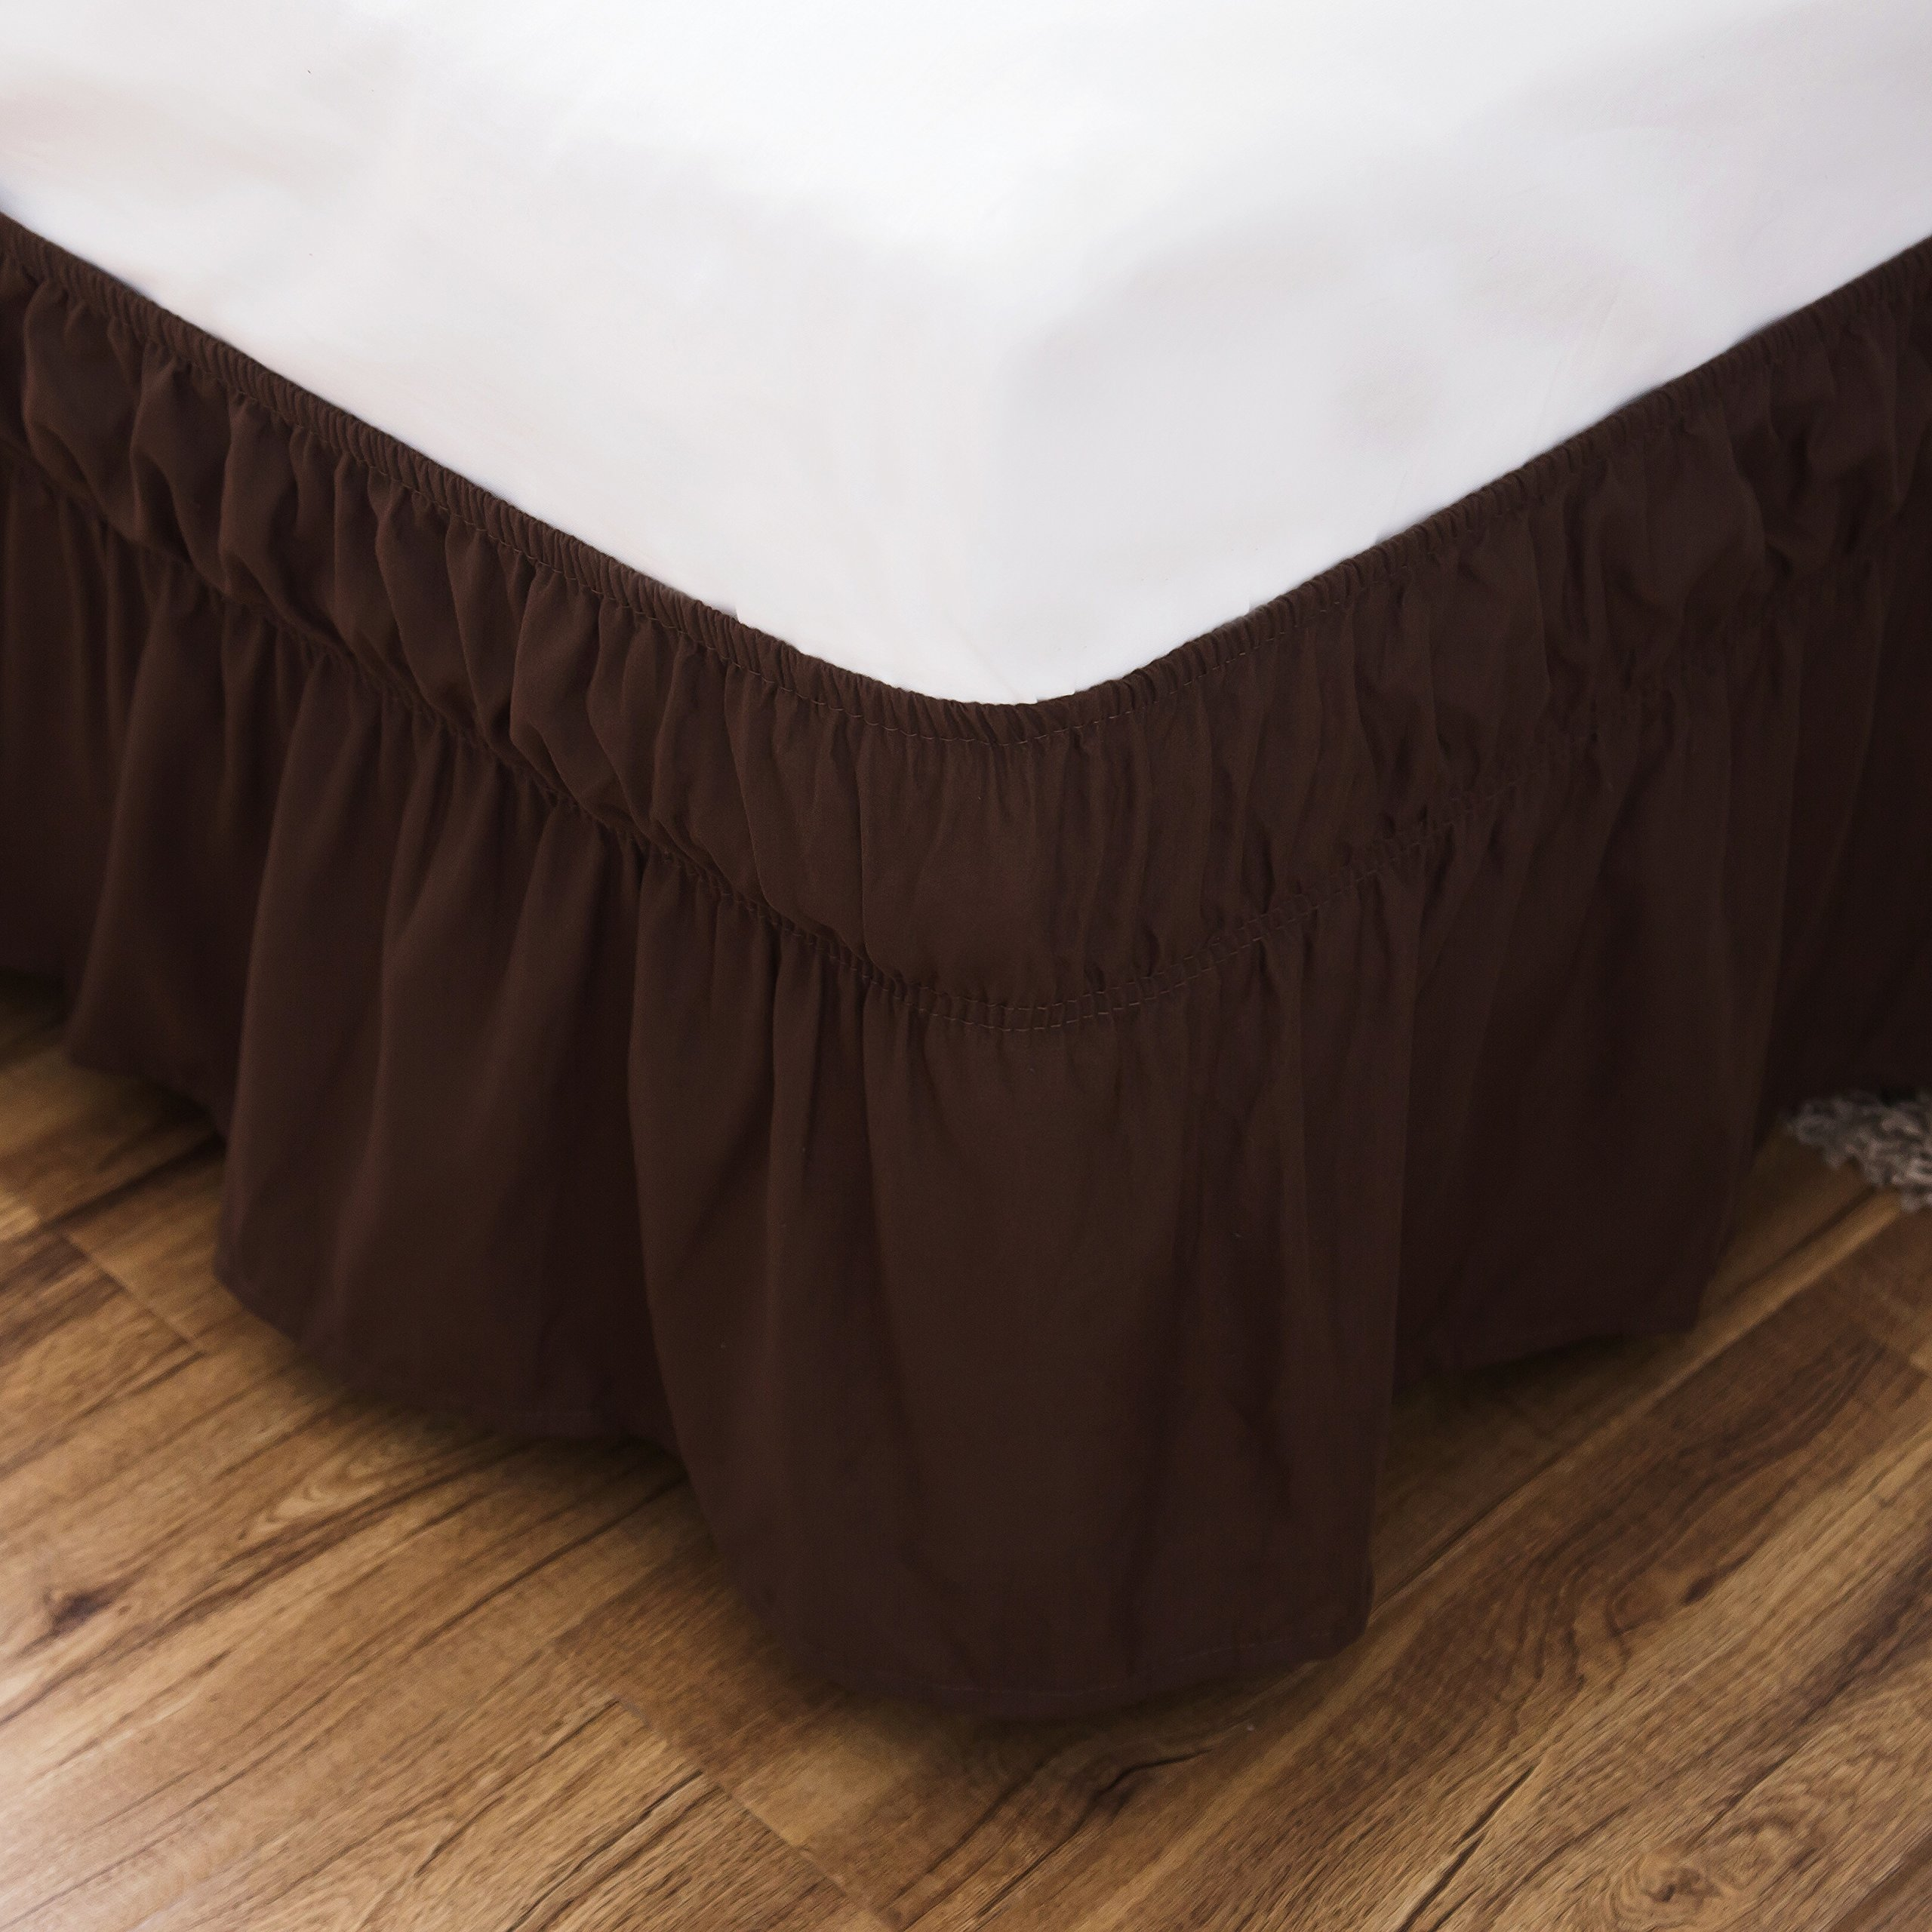 Bed Skirt-14 Inch Drop Dust Ruffle Three Fabric Sides Wrap Around Ruffled (Queen/King Coffee) Brushed Microfiber Adjustable Elastic Easy Fit